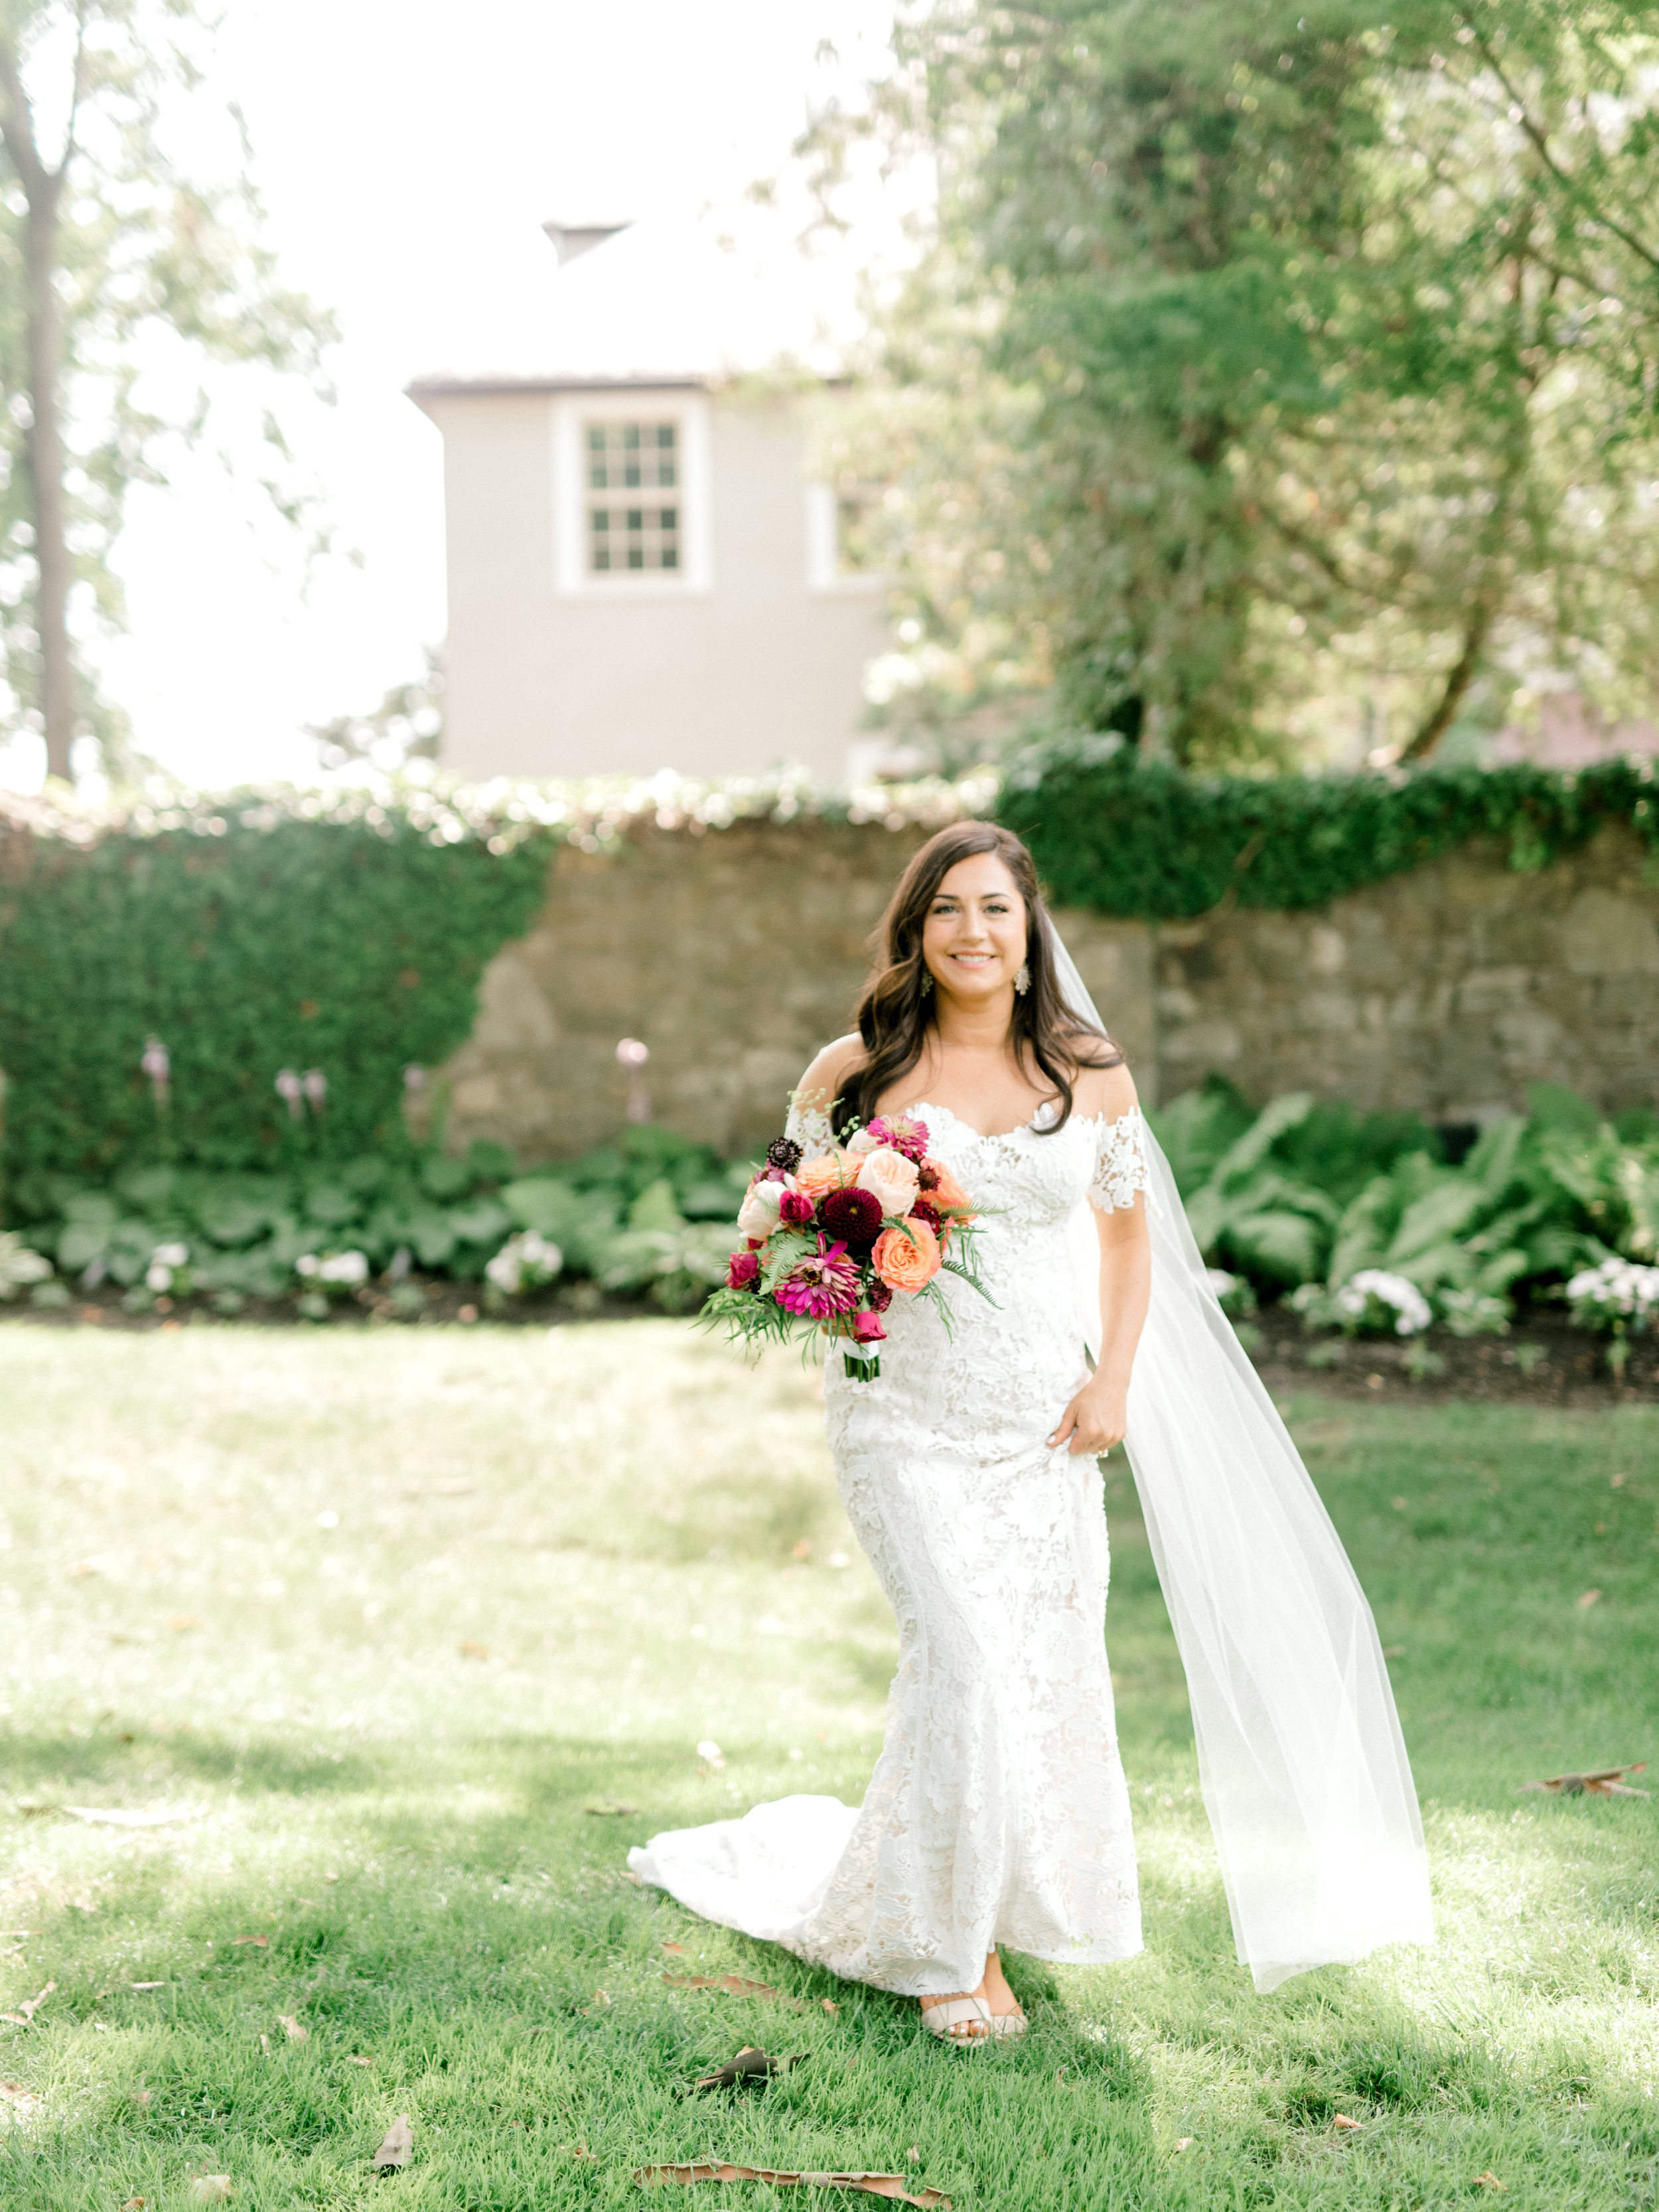 Lindsey carried a bright and colorful bouquet from The Pod Shop that paired so well with her classic Lover's Society lace gown for her modern sunny summer wedding at Hotel du Village.